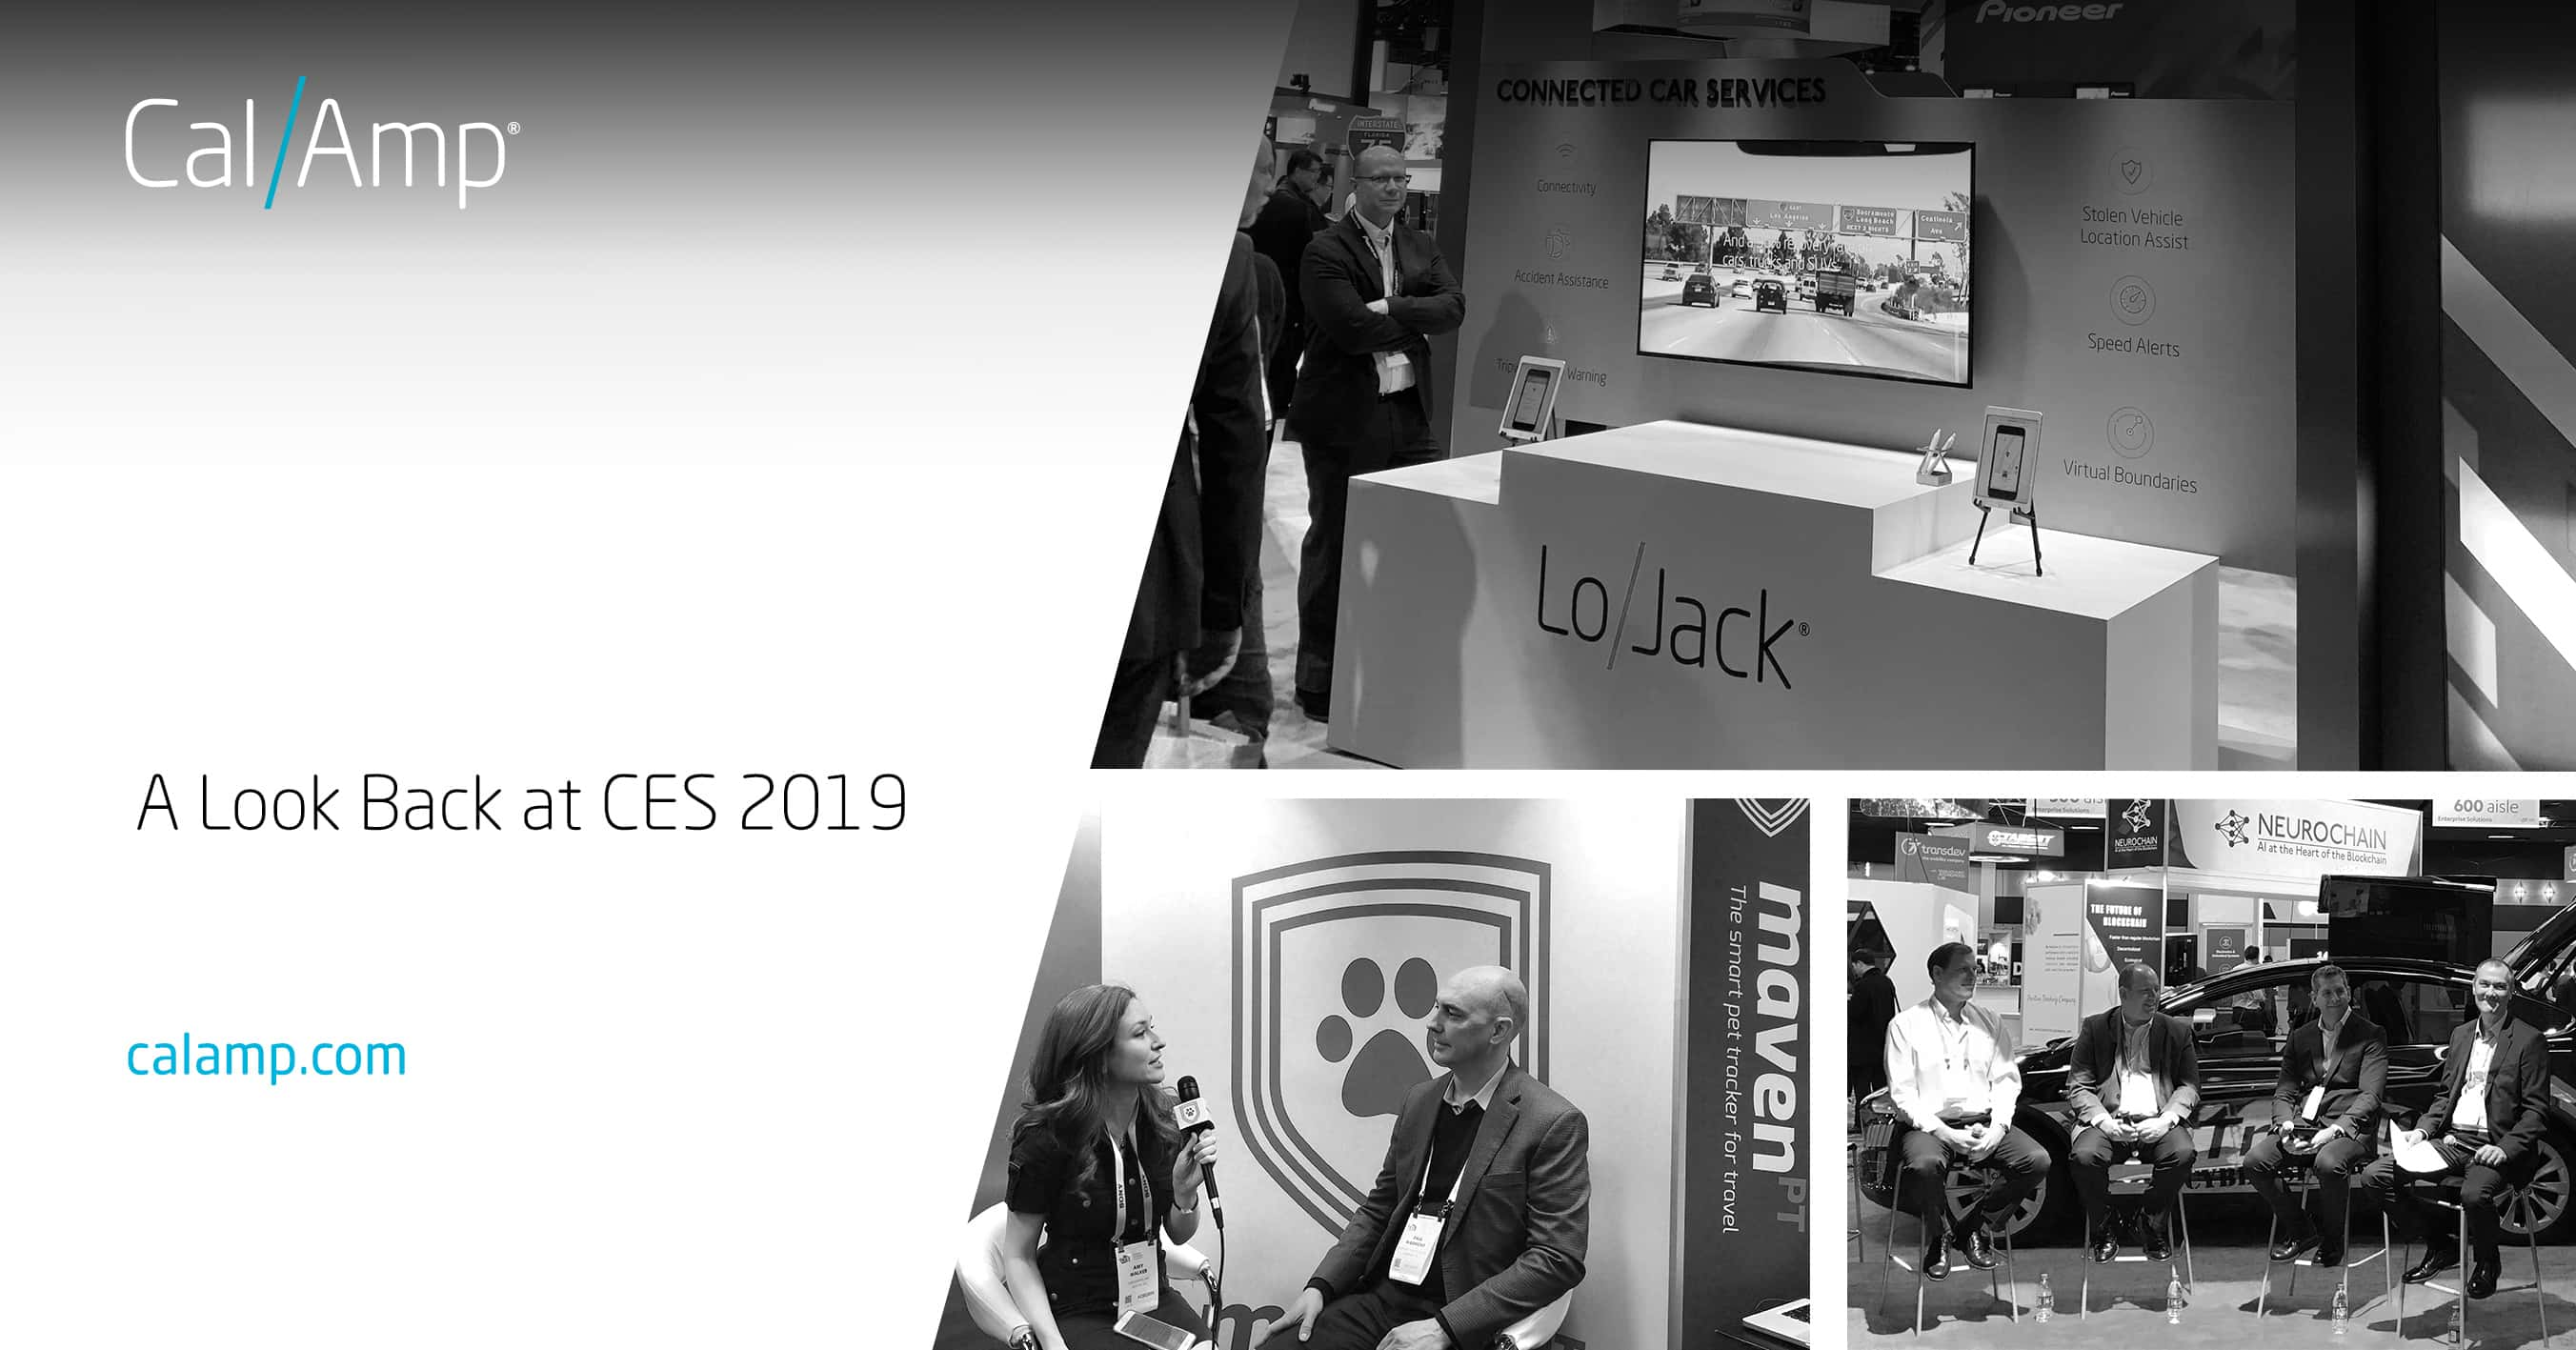 A Look Back at CES 2019